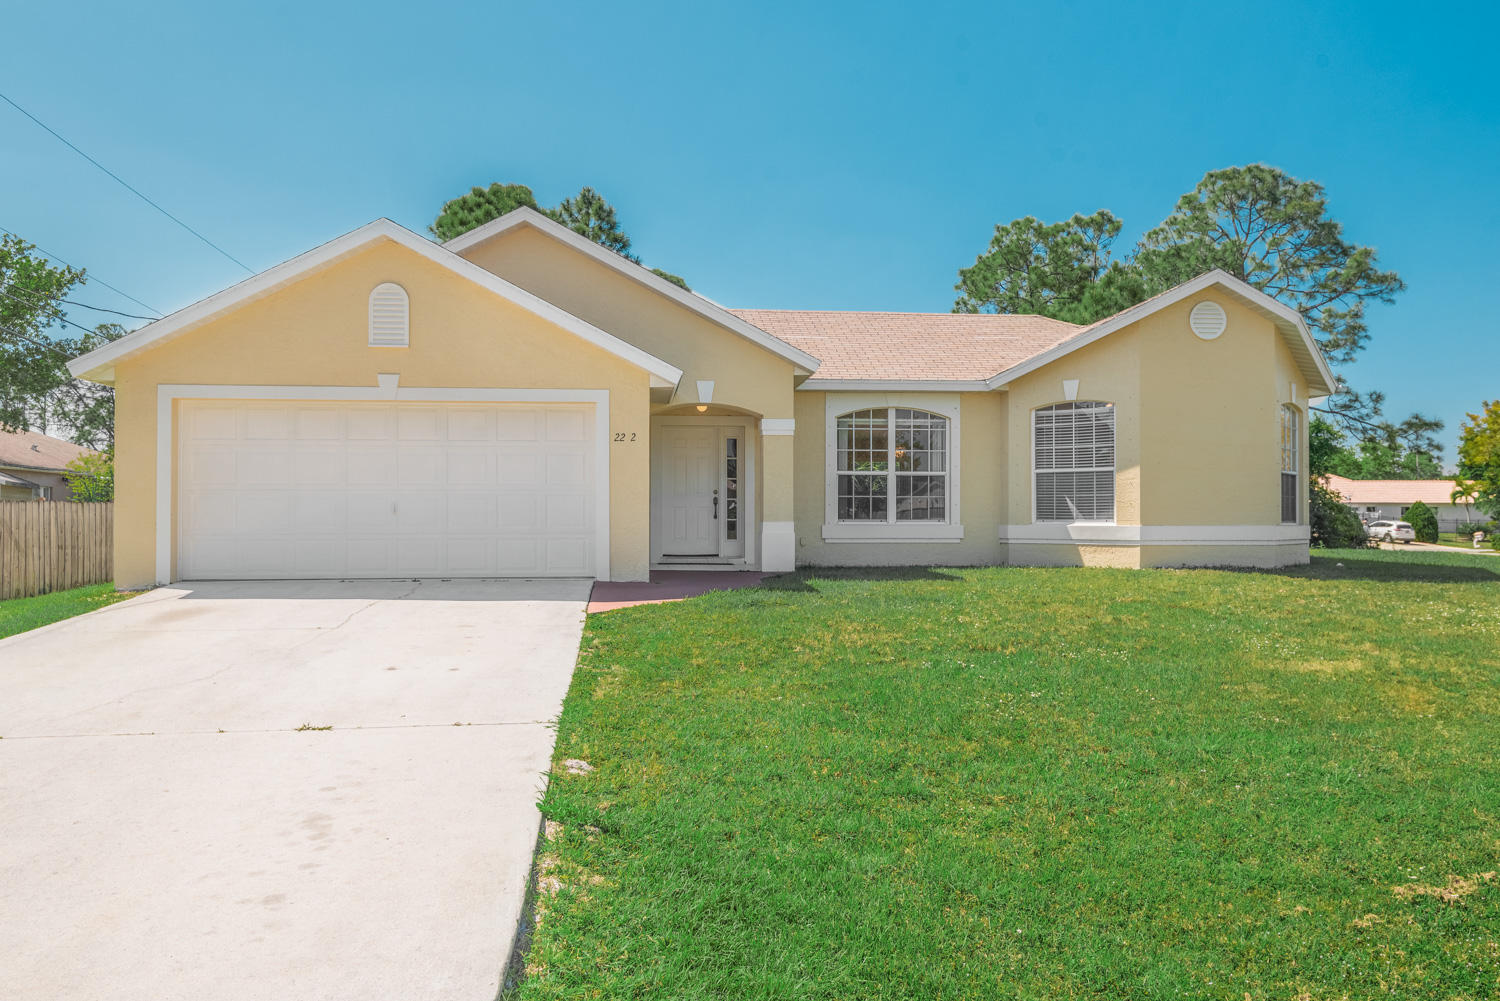 2202 SW Grosspoint Street 34953 - One of Port Saint Lucie Homes for Sale